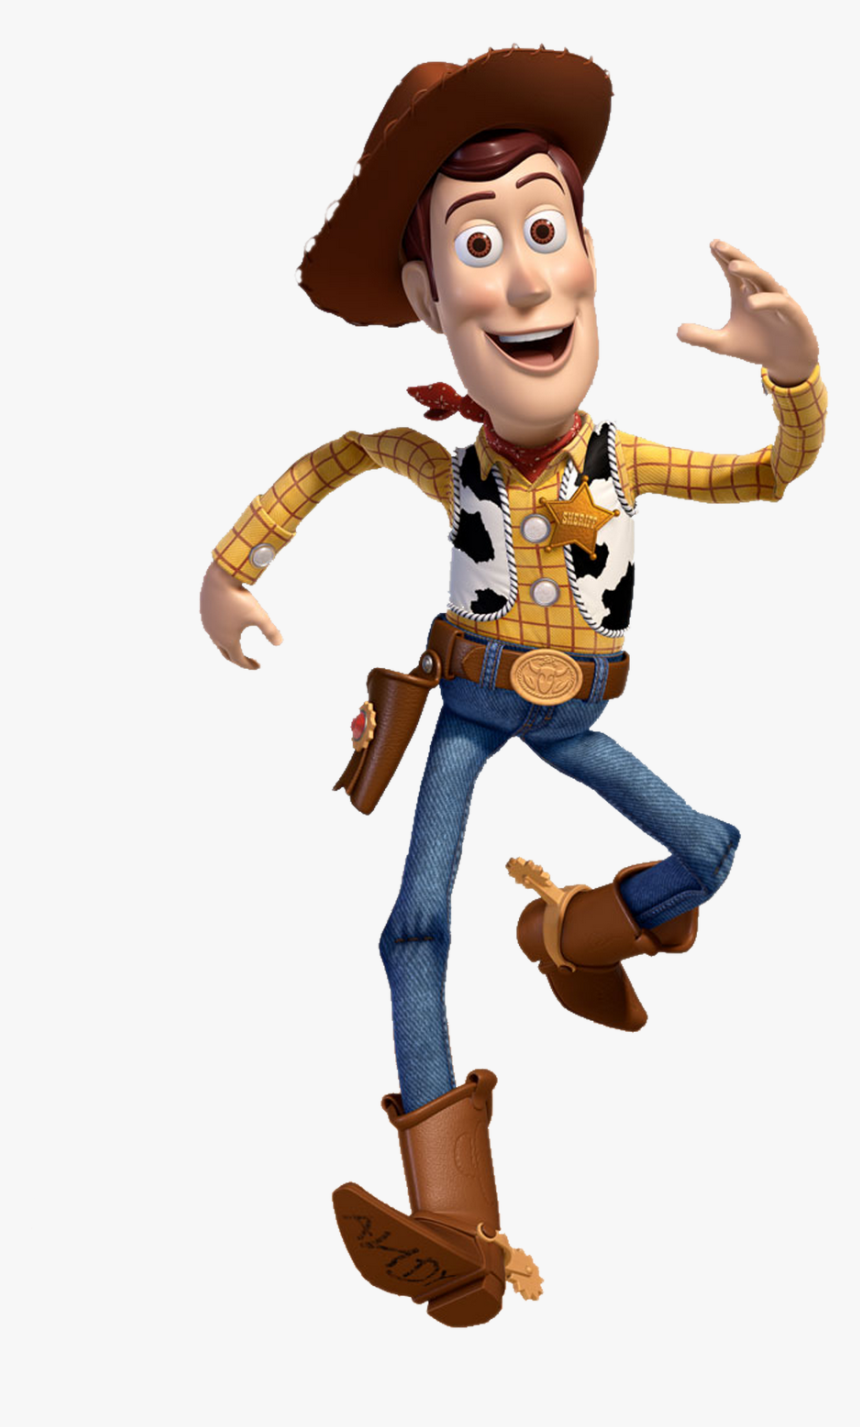 Woody Sml Png - Toy Story Woody Png, Transparent Png, Free Download